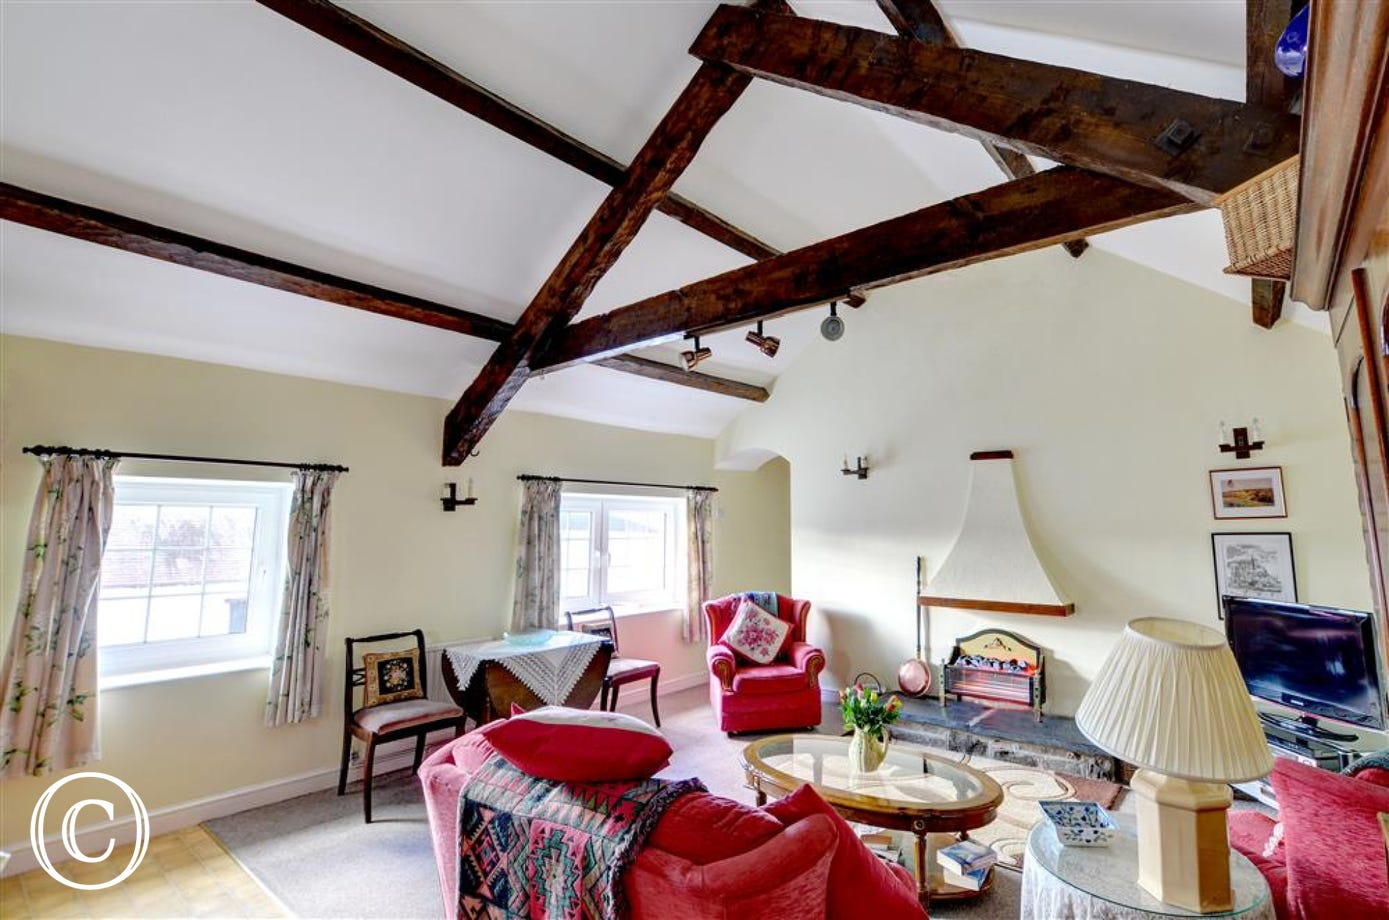 The sitting room is bright and airy with high ceilings and comfortable seating